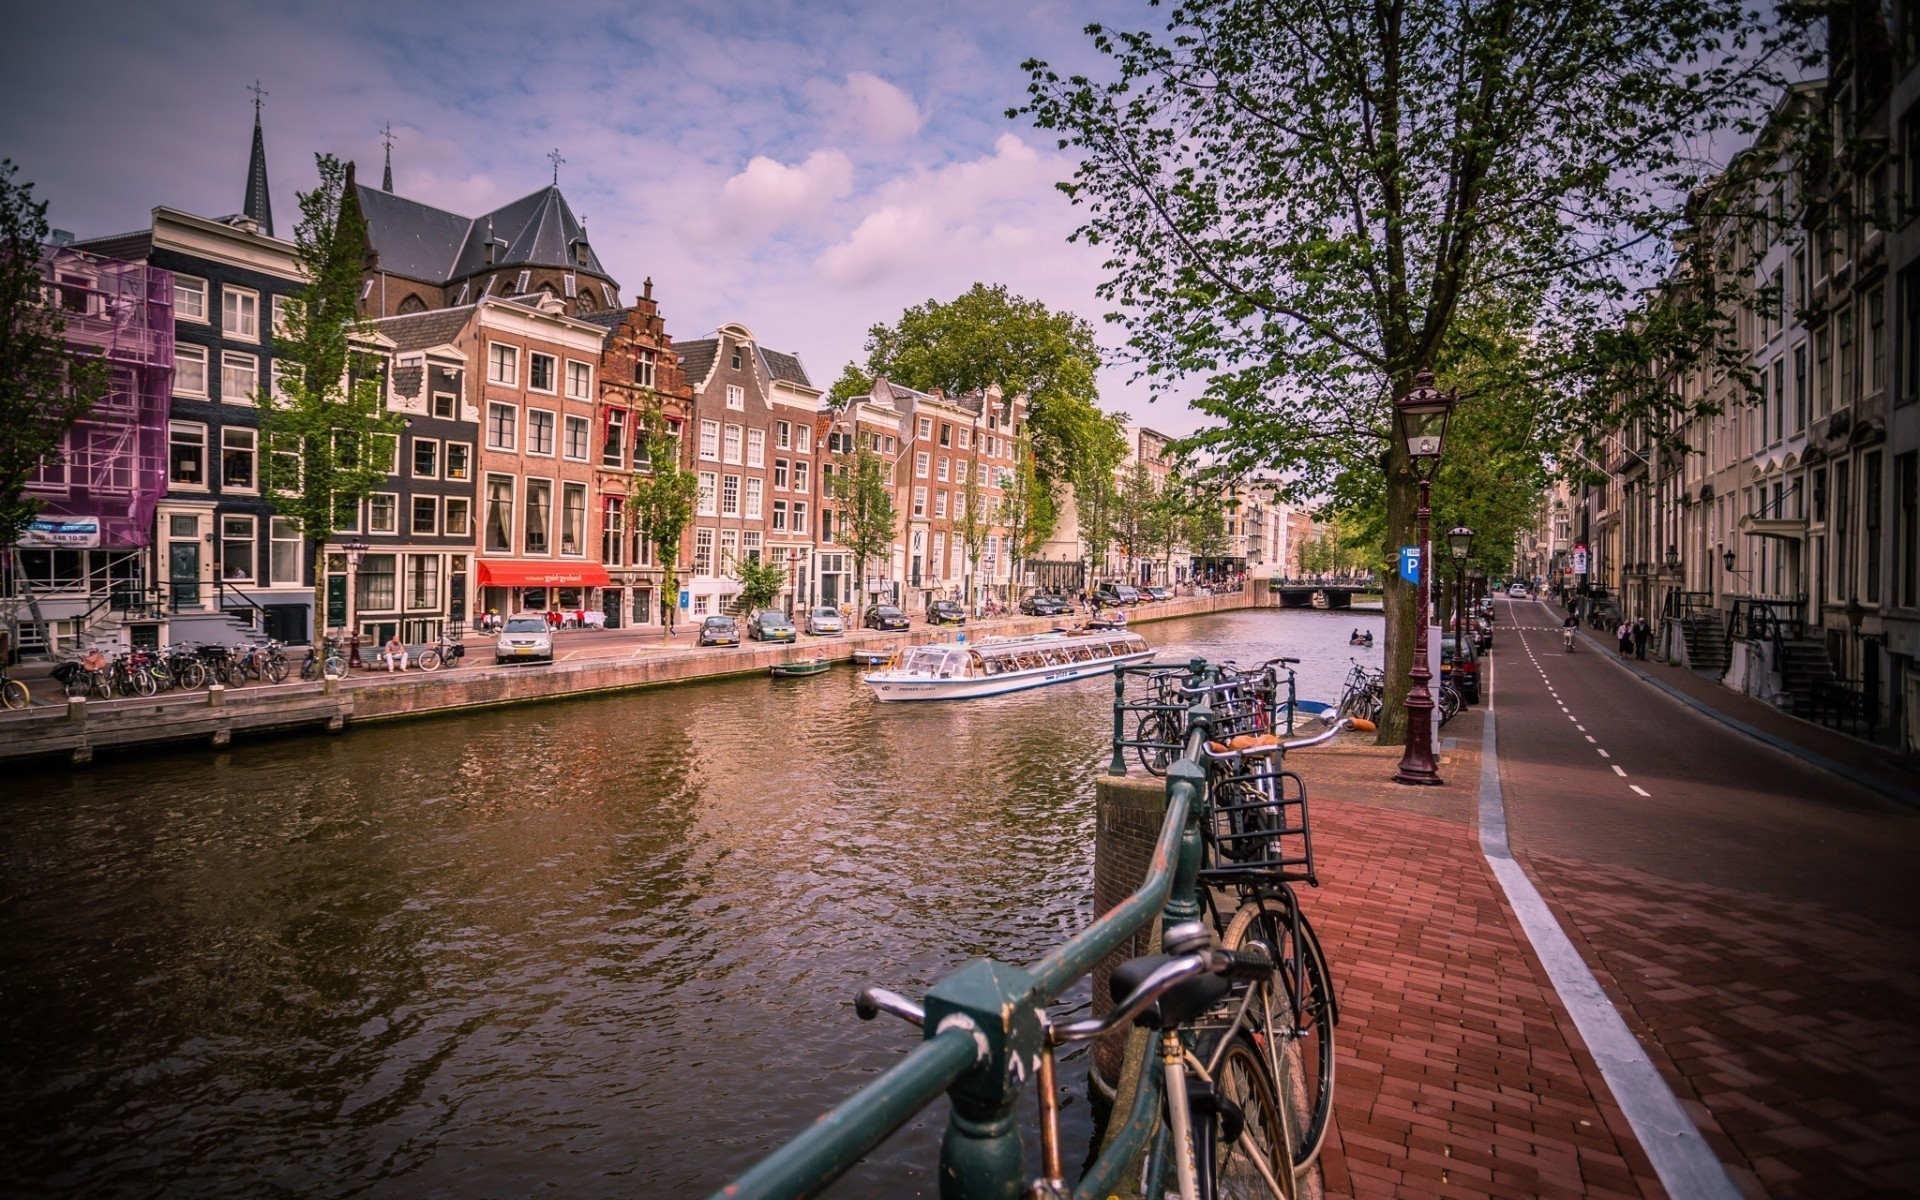 other city canal city architecture building travel water river street urban town bridge house tourism outdoors old sight reflection sky amsterdam landscape boat